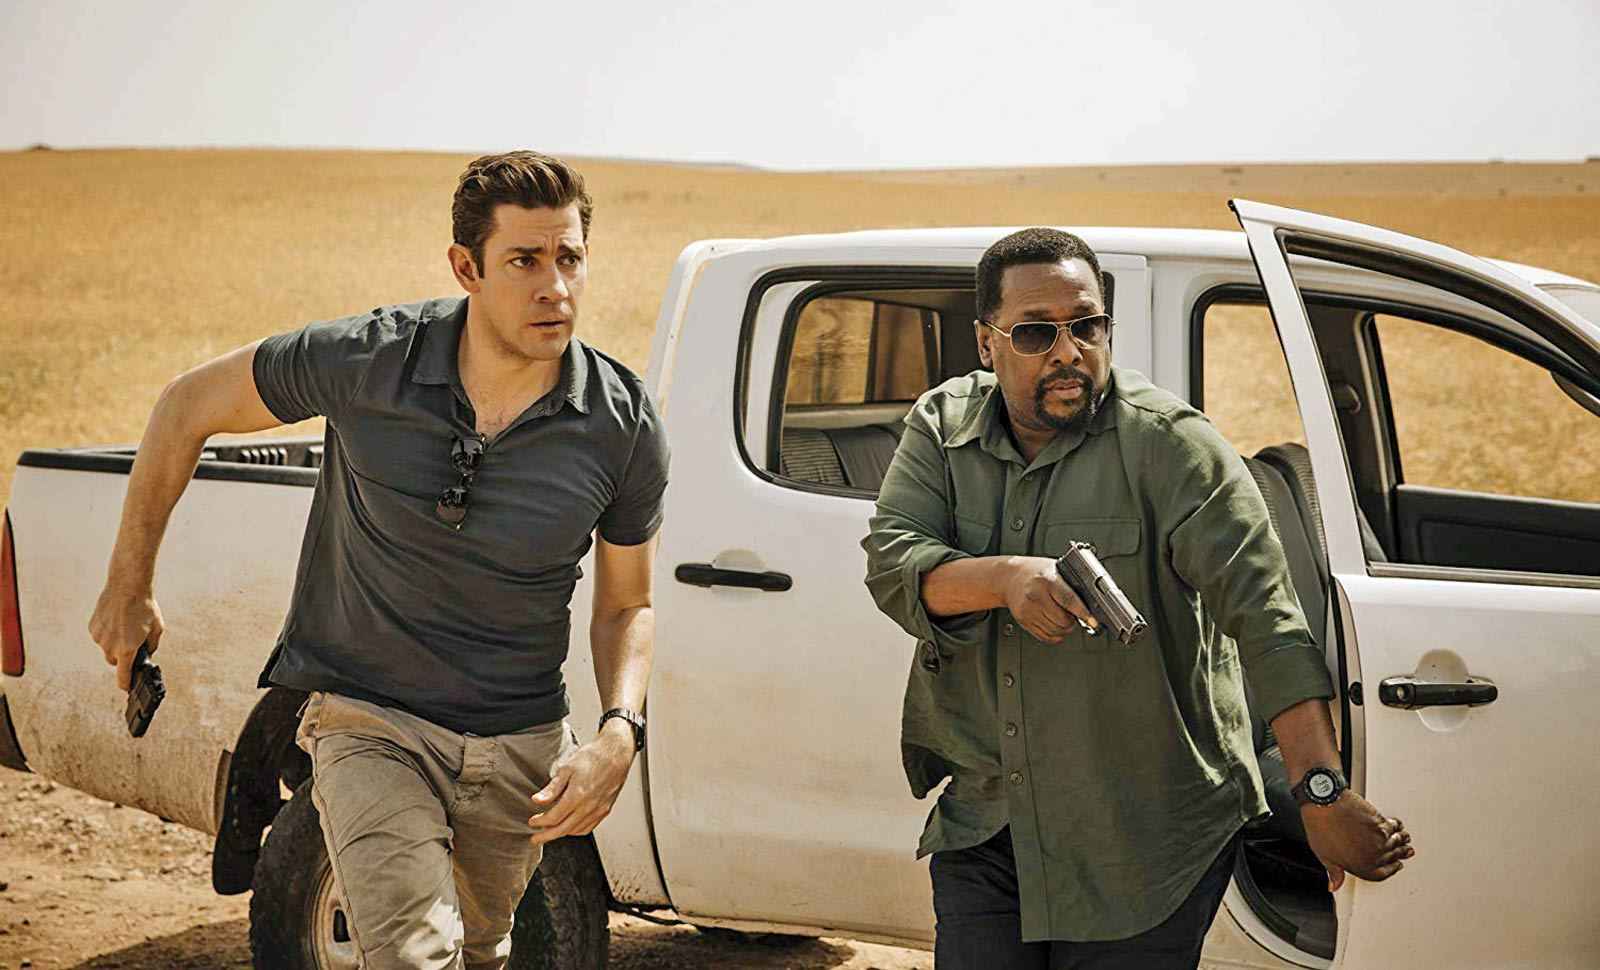 Jack Ryan season 2 trailer out with promising action scenes and an enthusiastic John Krasinski